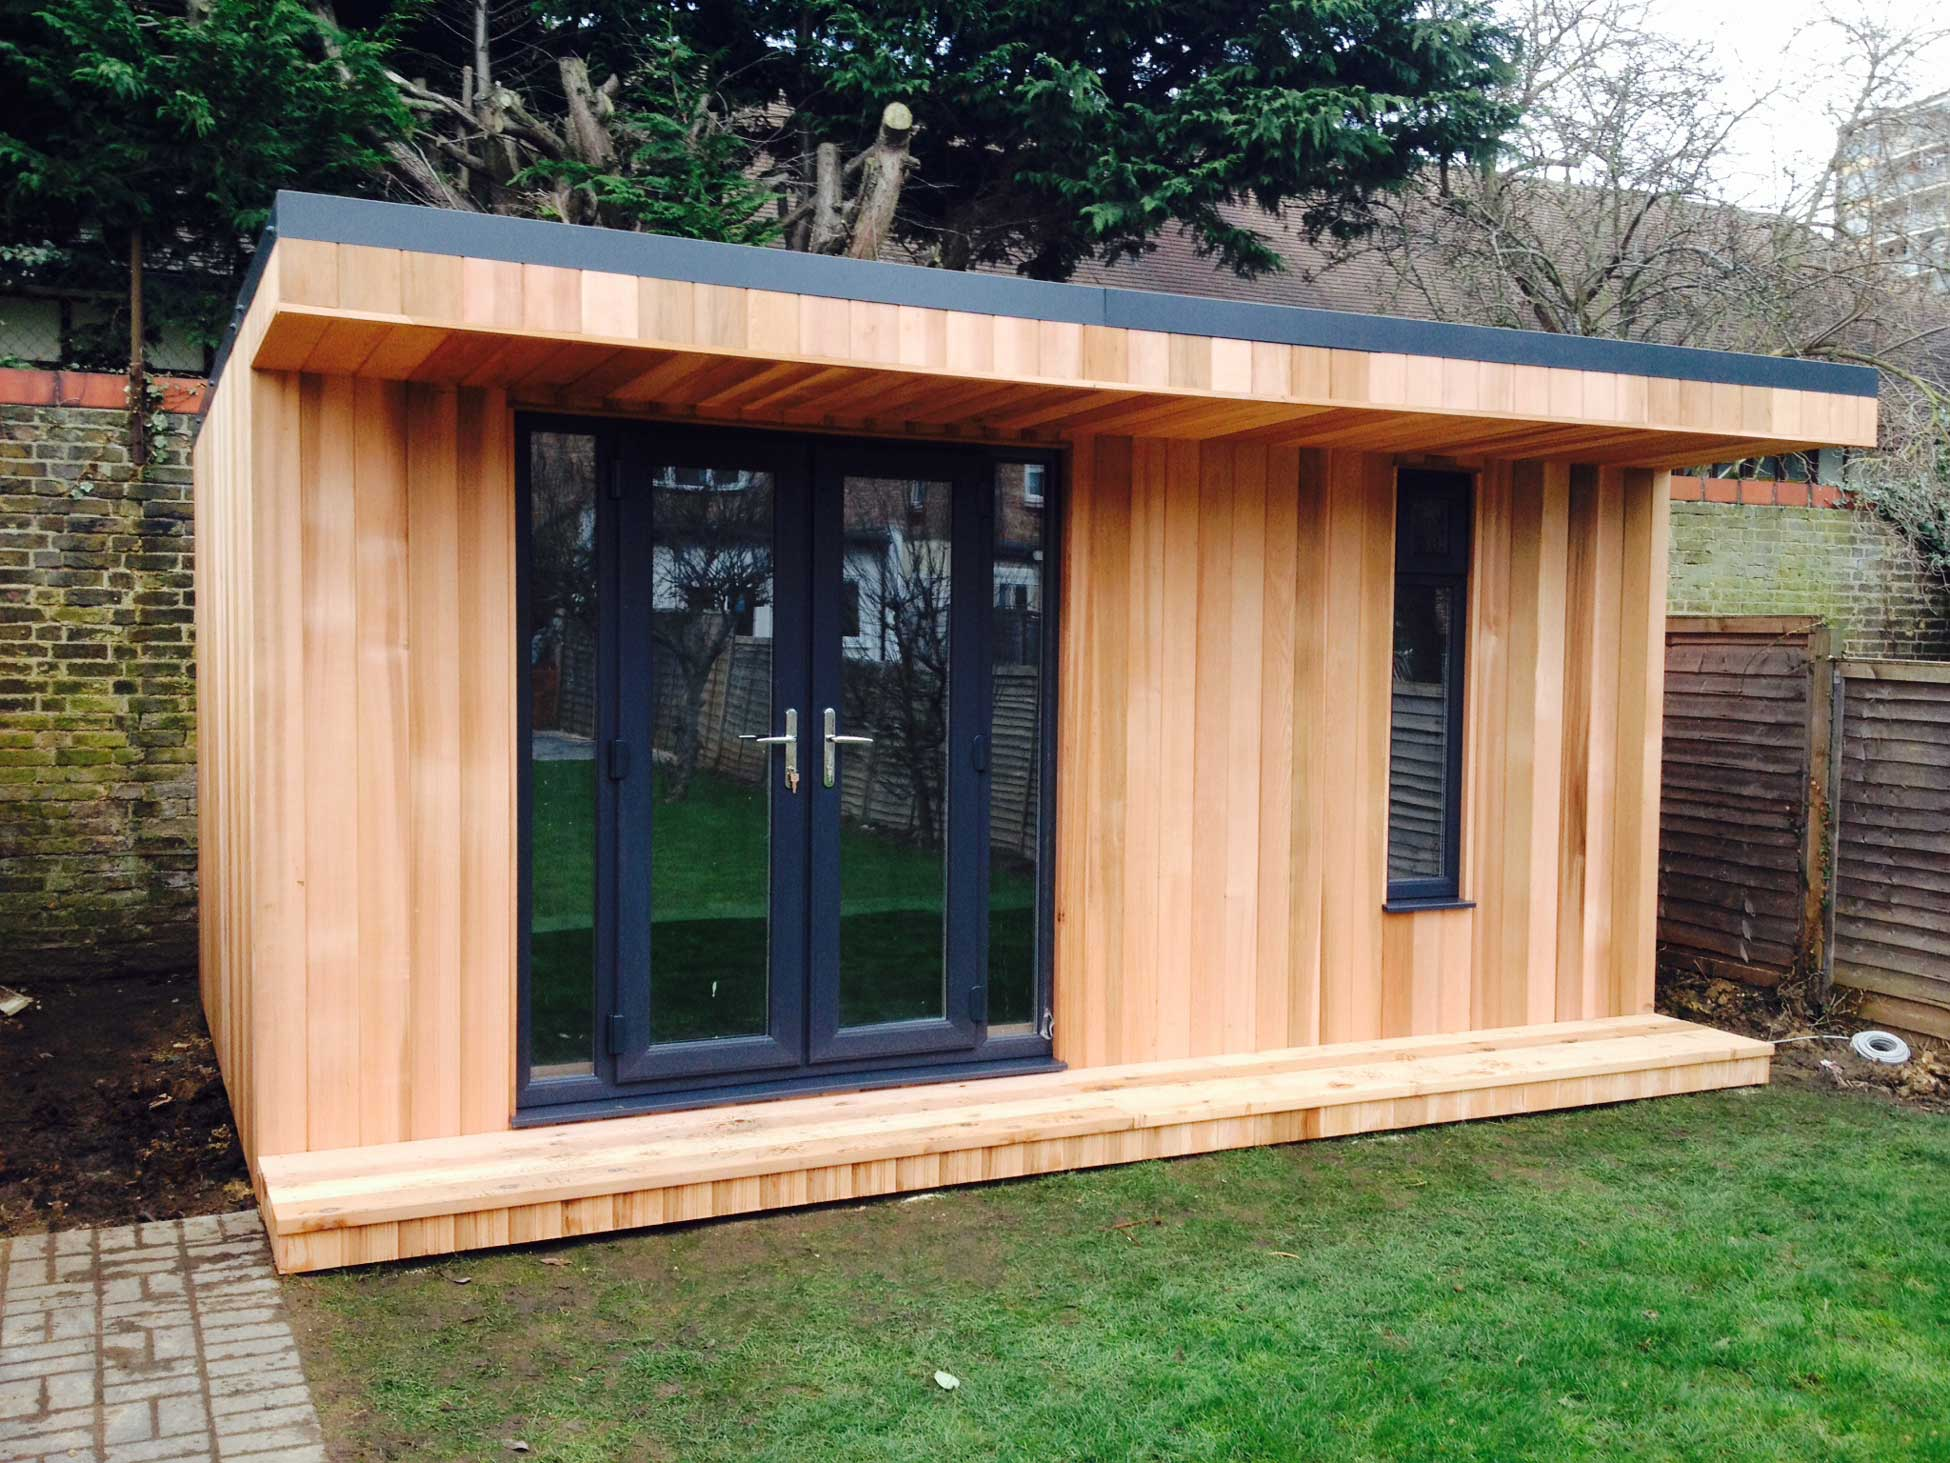 garden room with double doors and narrow vertical window